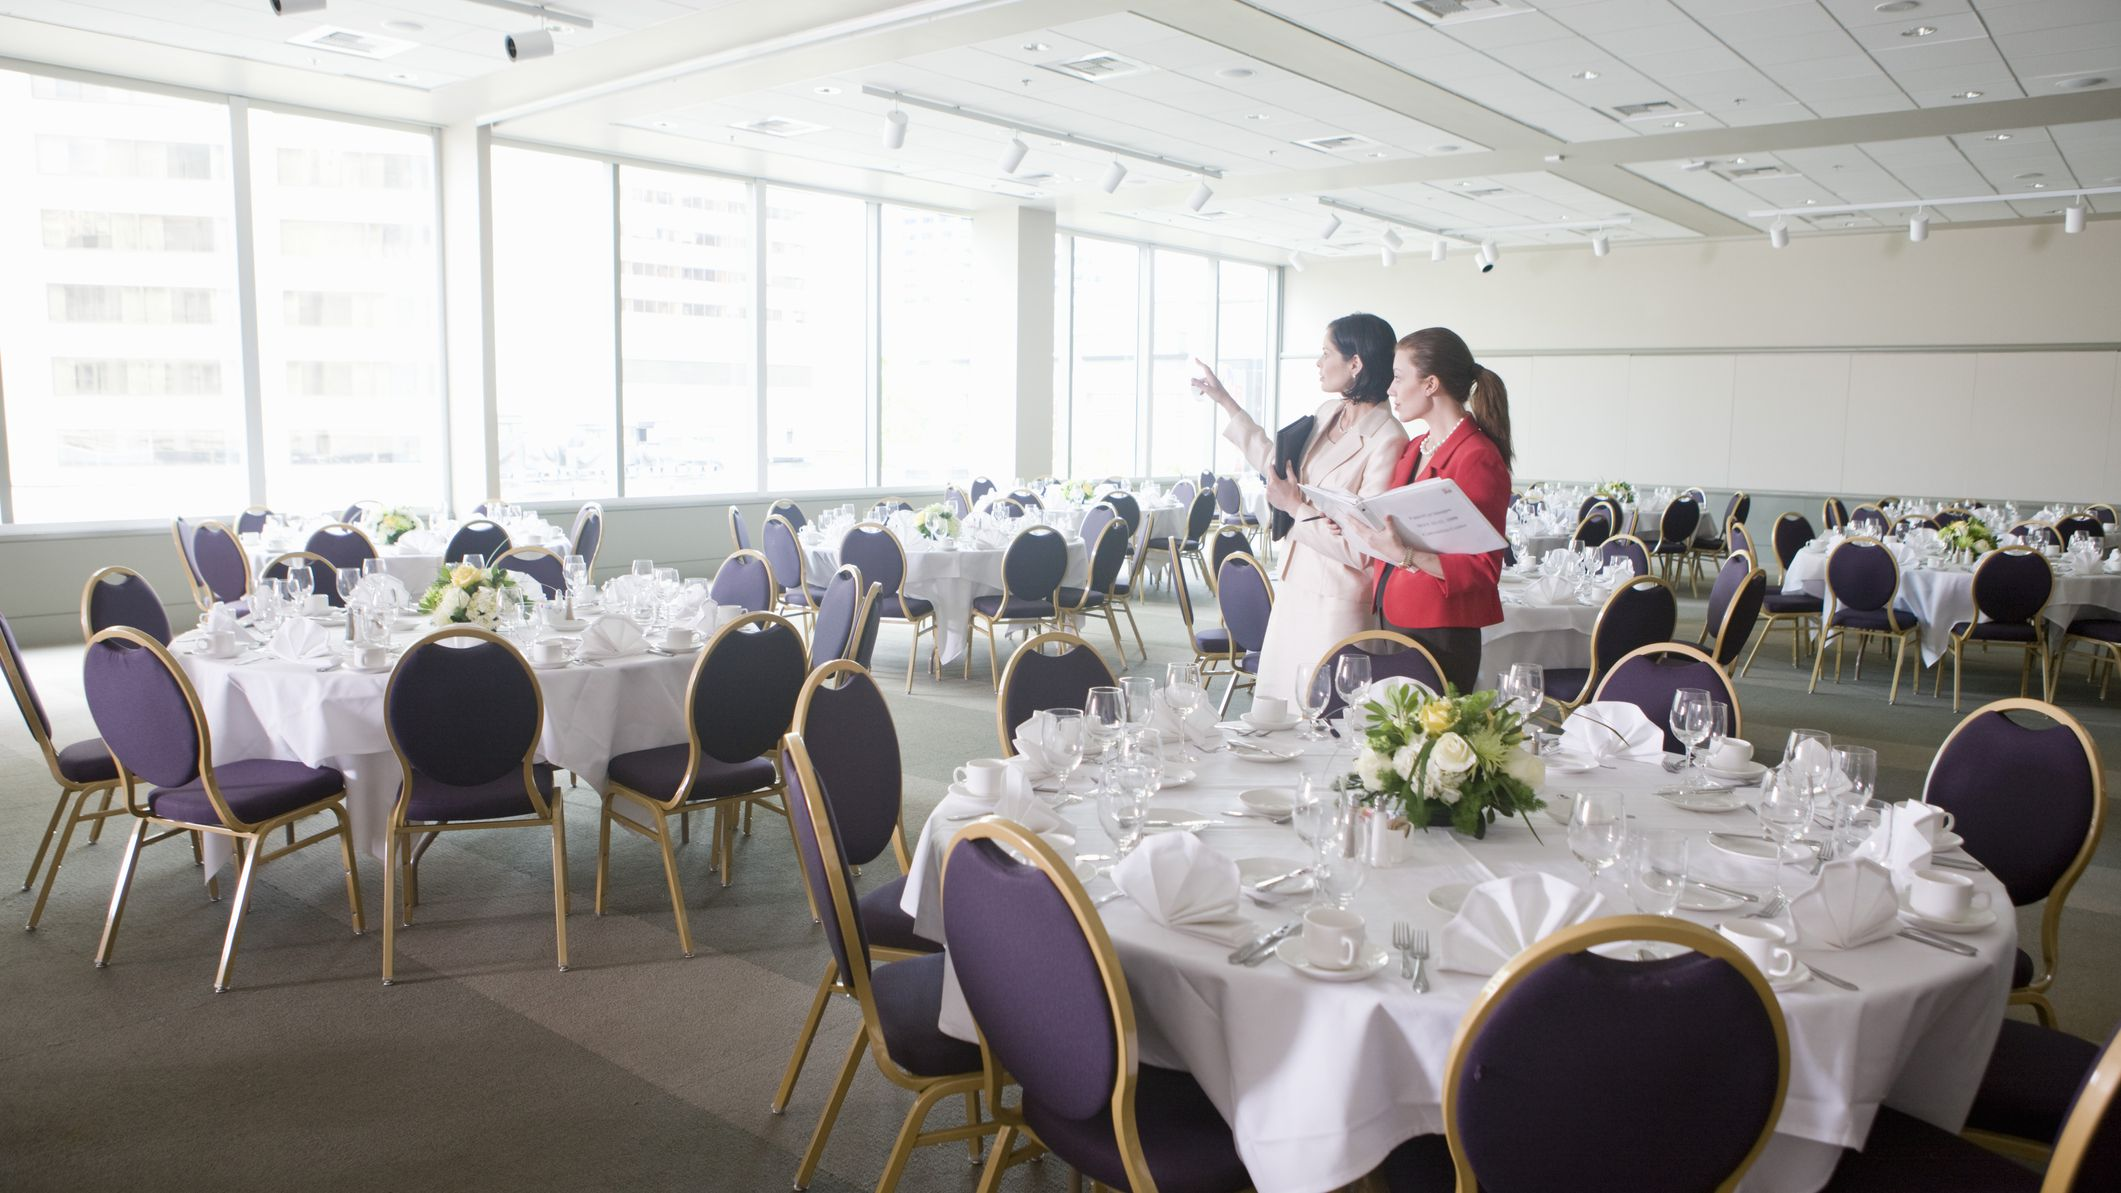 Benefits of Starting an Event Management Company